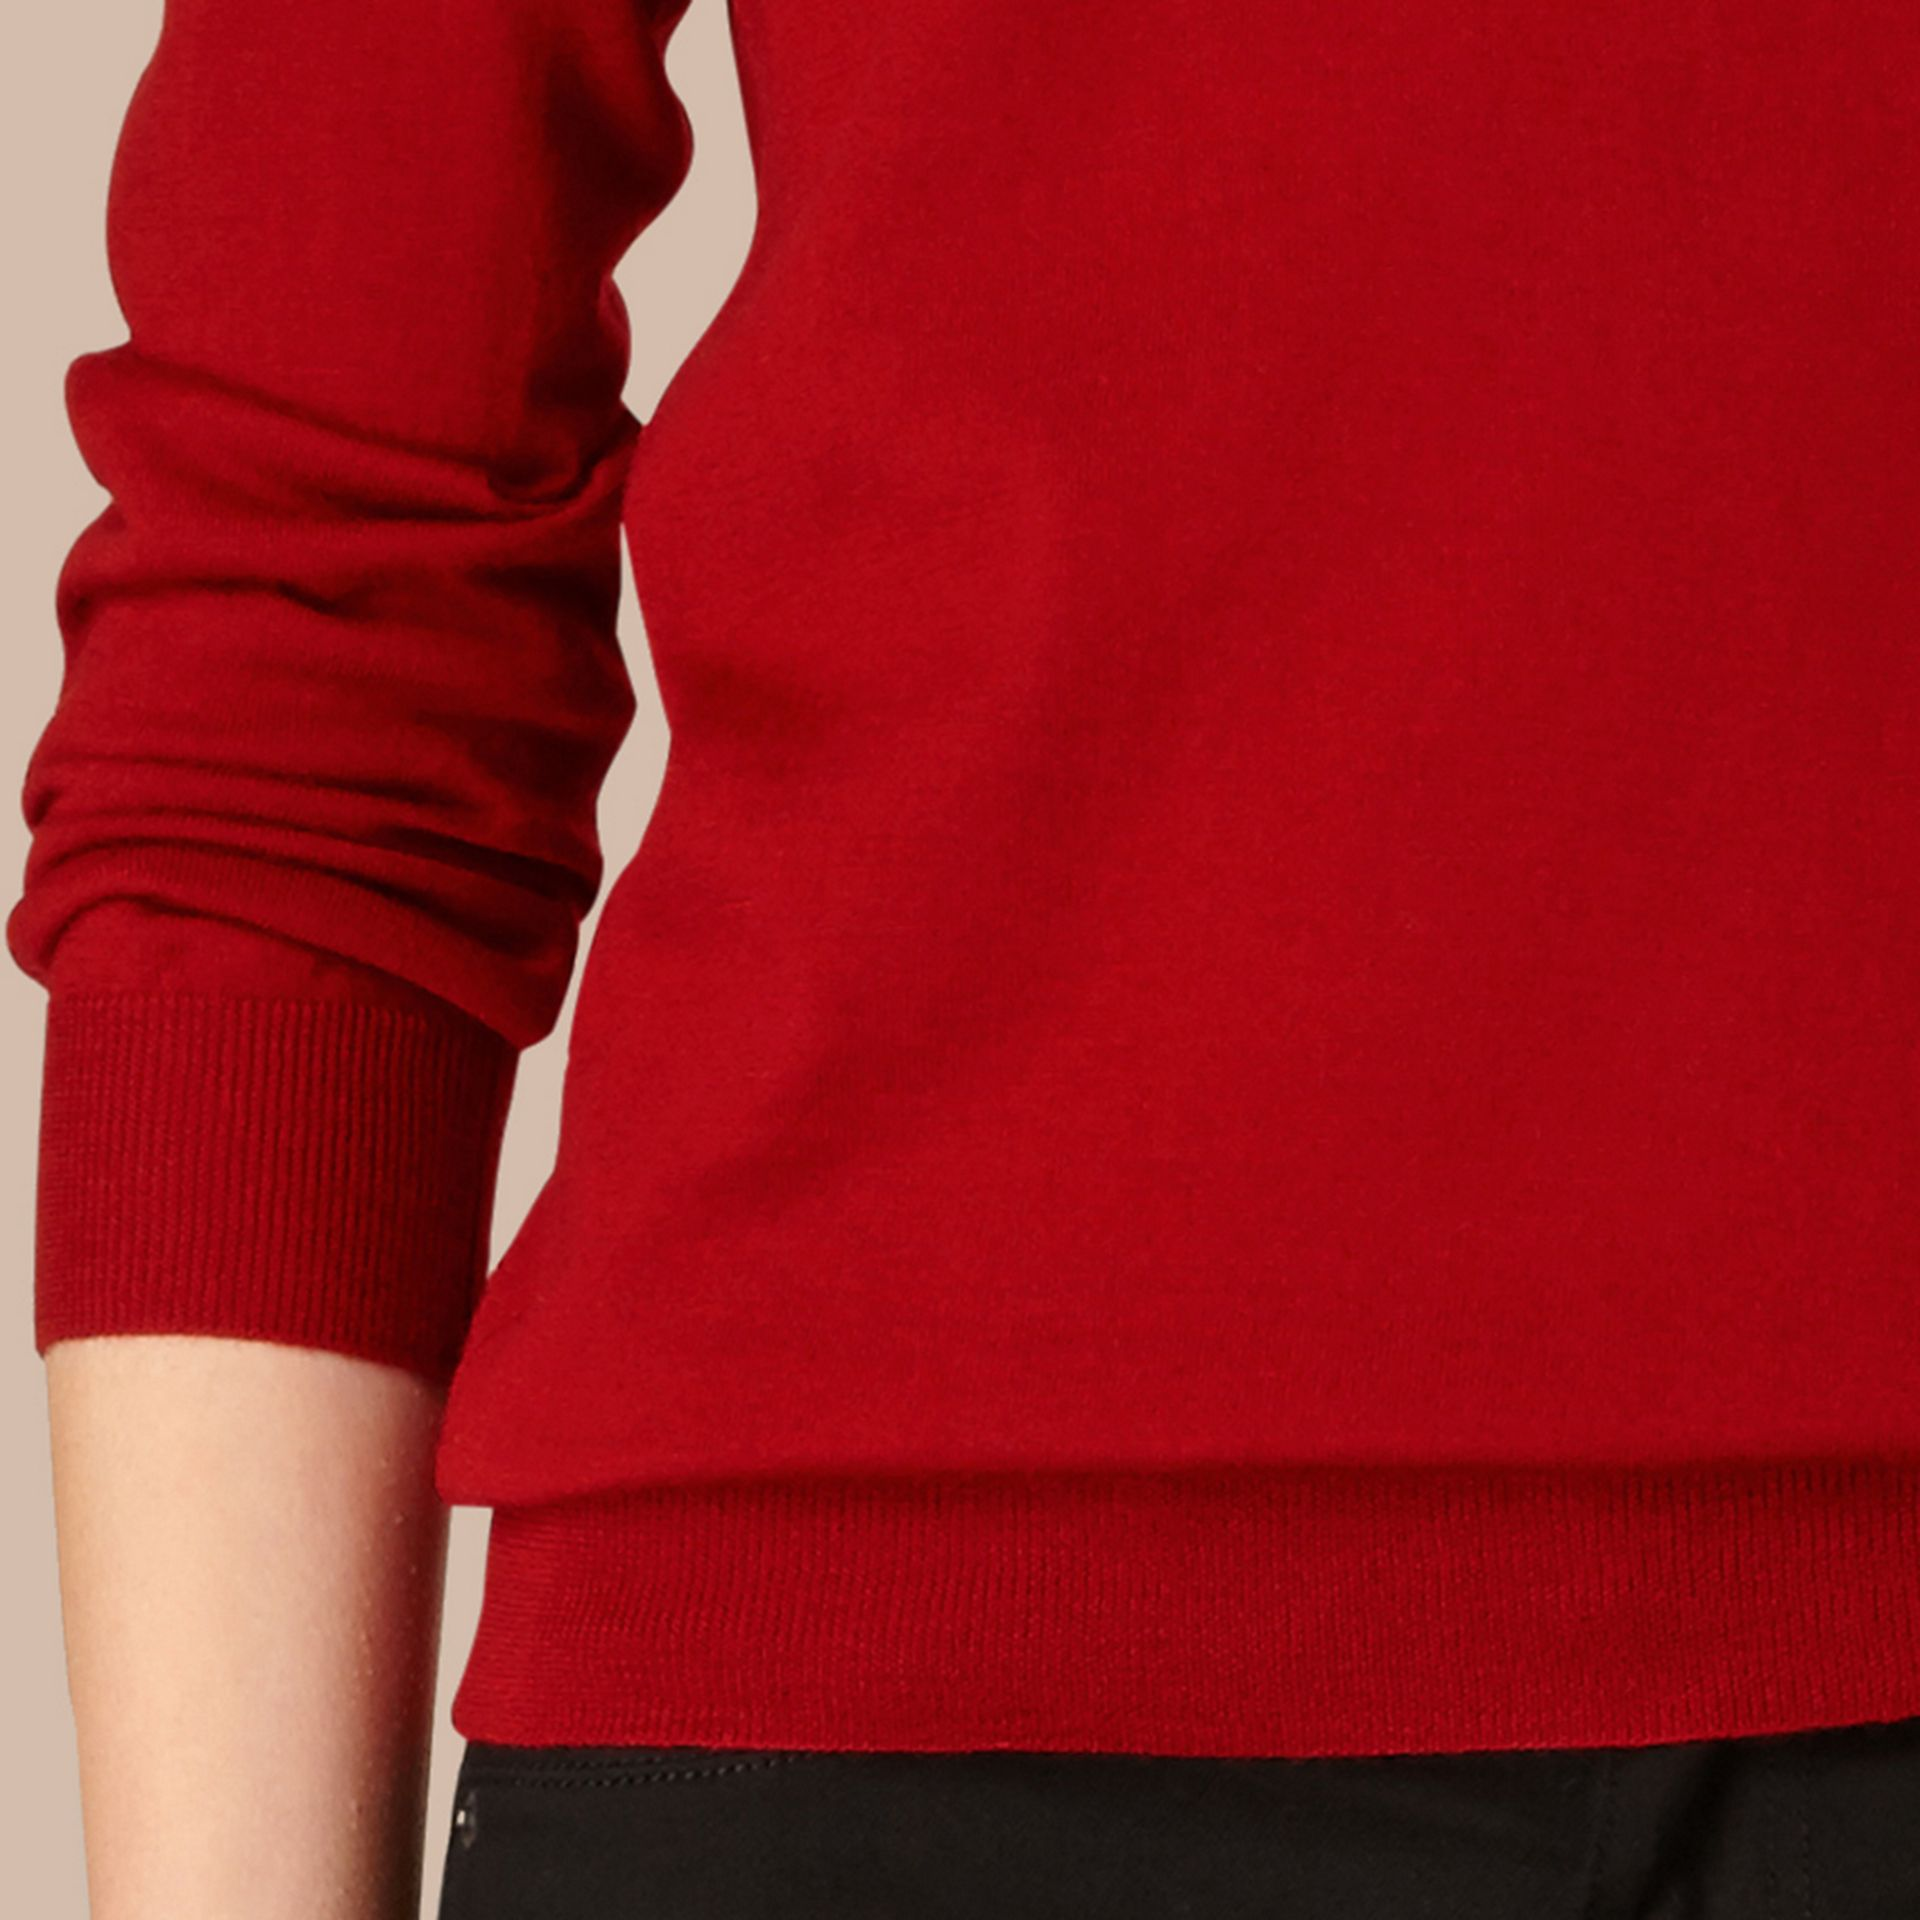 Check Detail Merino Wool Crew Neck Sweater in Parade Red - Women | Burberry - gallery image 2